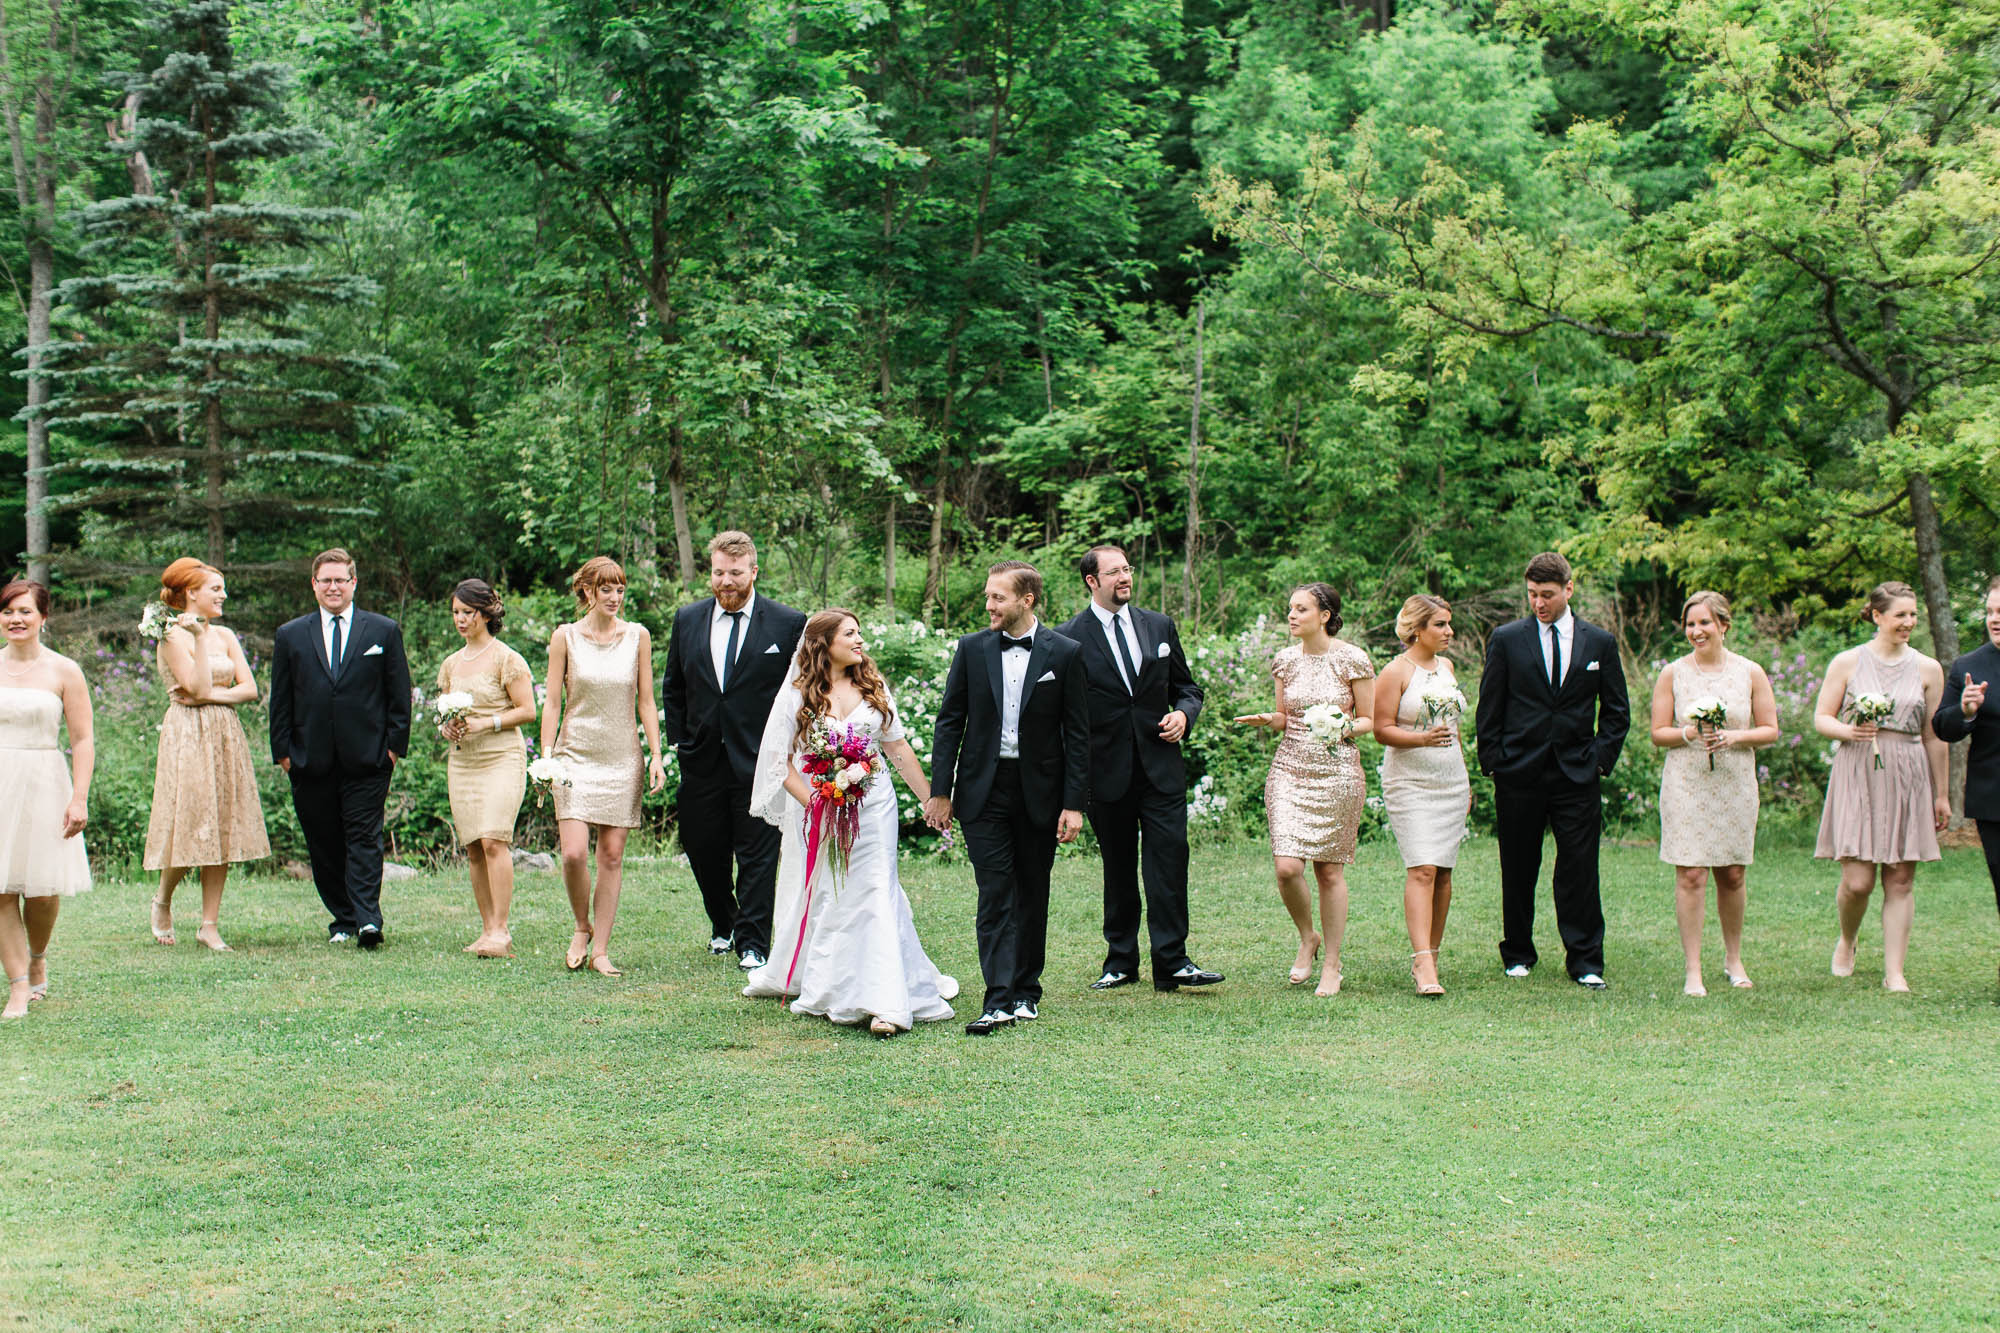 www-marycostaphotography-com-buffalo-ny-wedding-062